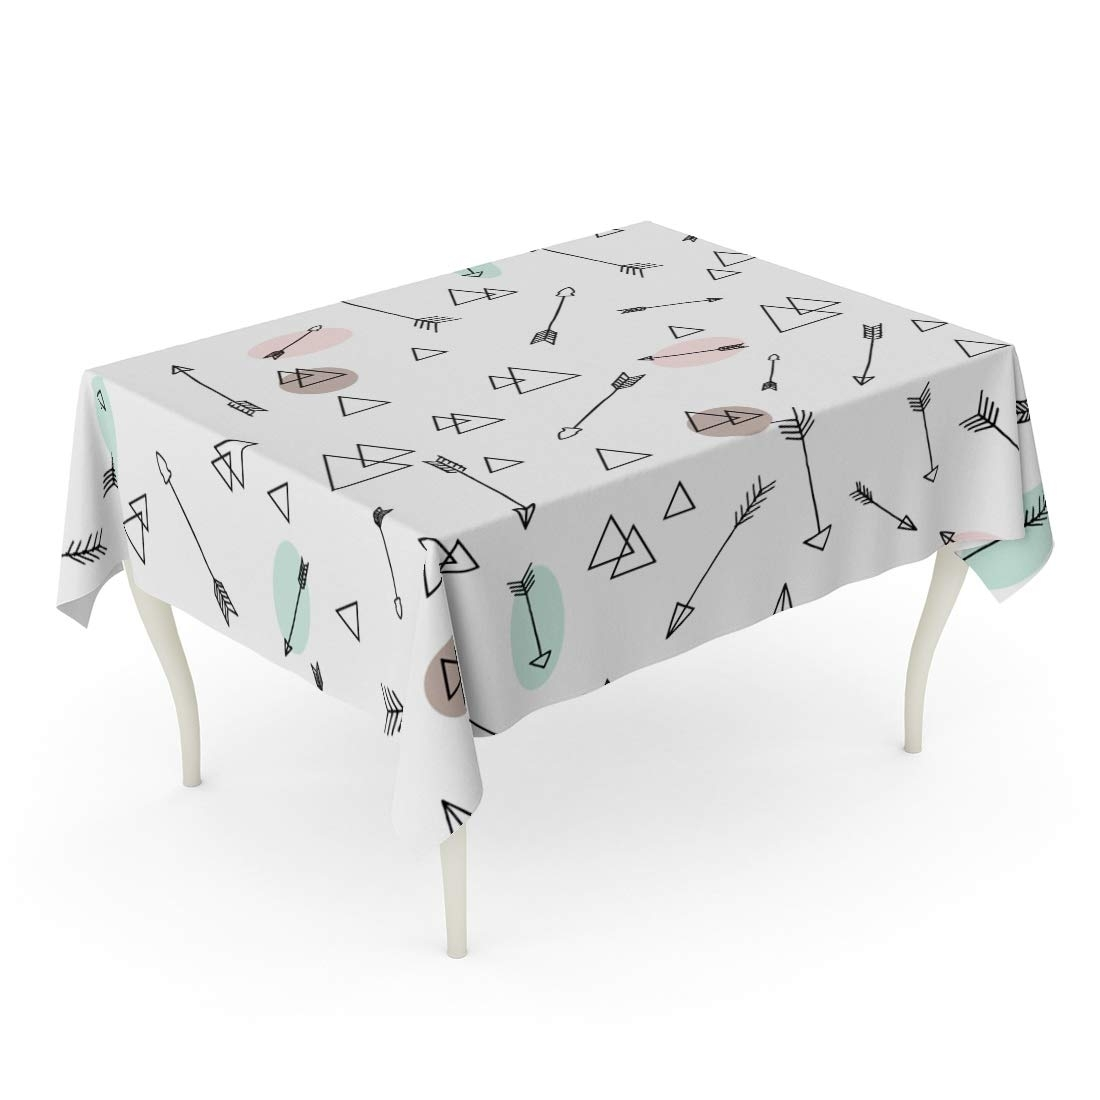 Arrows Table Runner Gifts Housewarming Table linen White//gray table decor